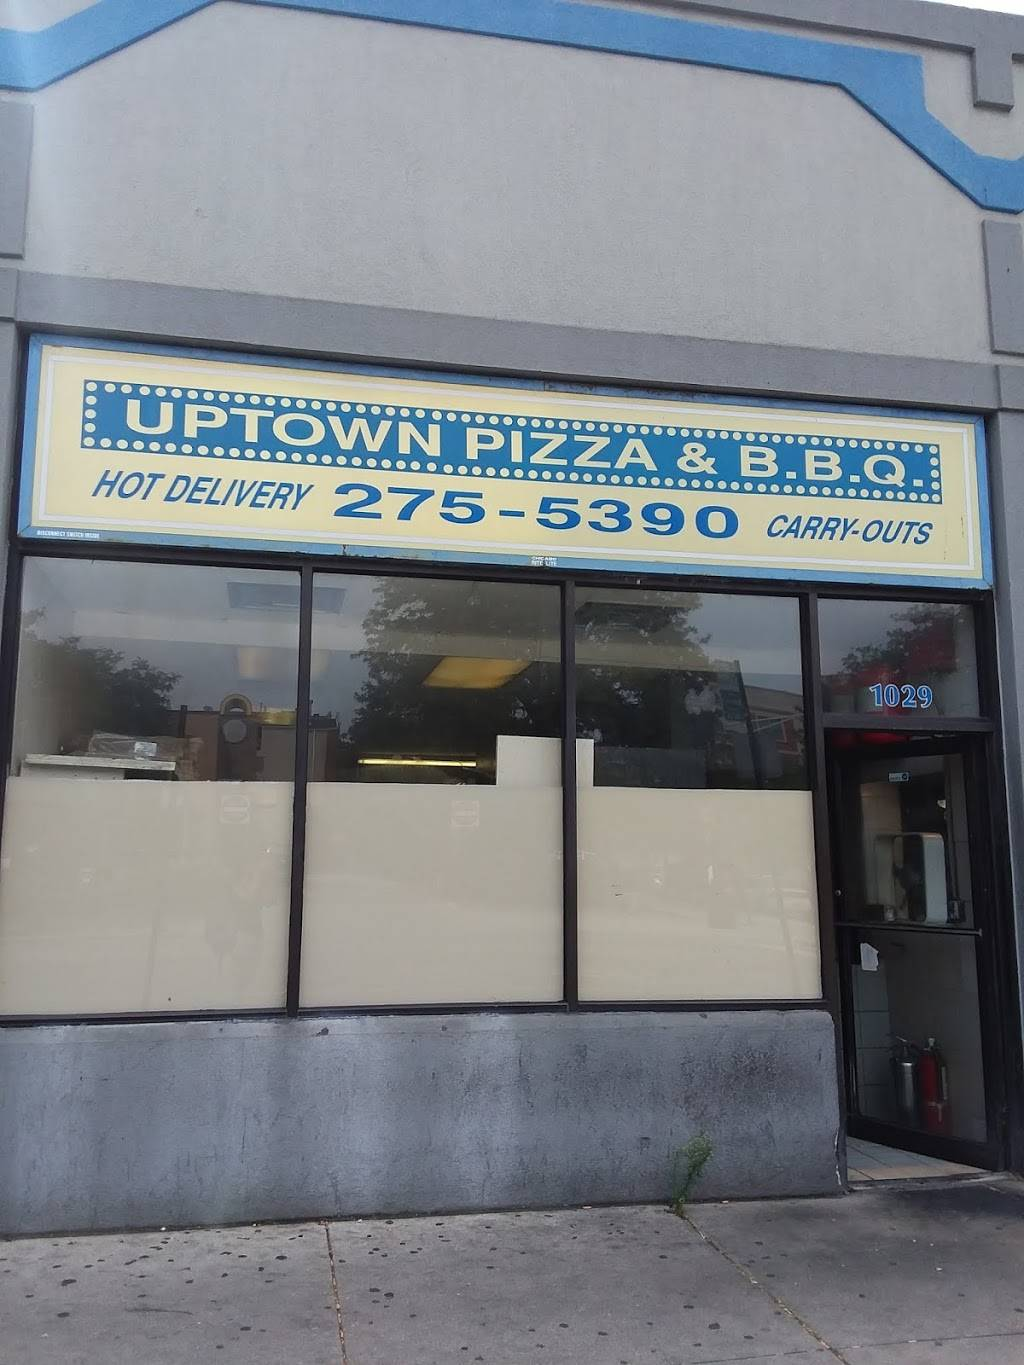 Uptown Pizza & Barbecue Restaurant   restaurant   1031 W Wilson Ave, Chicago, IL 60640, USA   7732755390 OR +1 773-275-5390